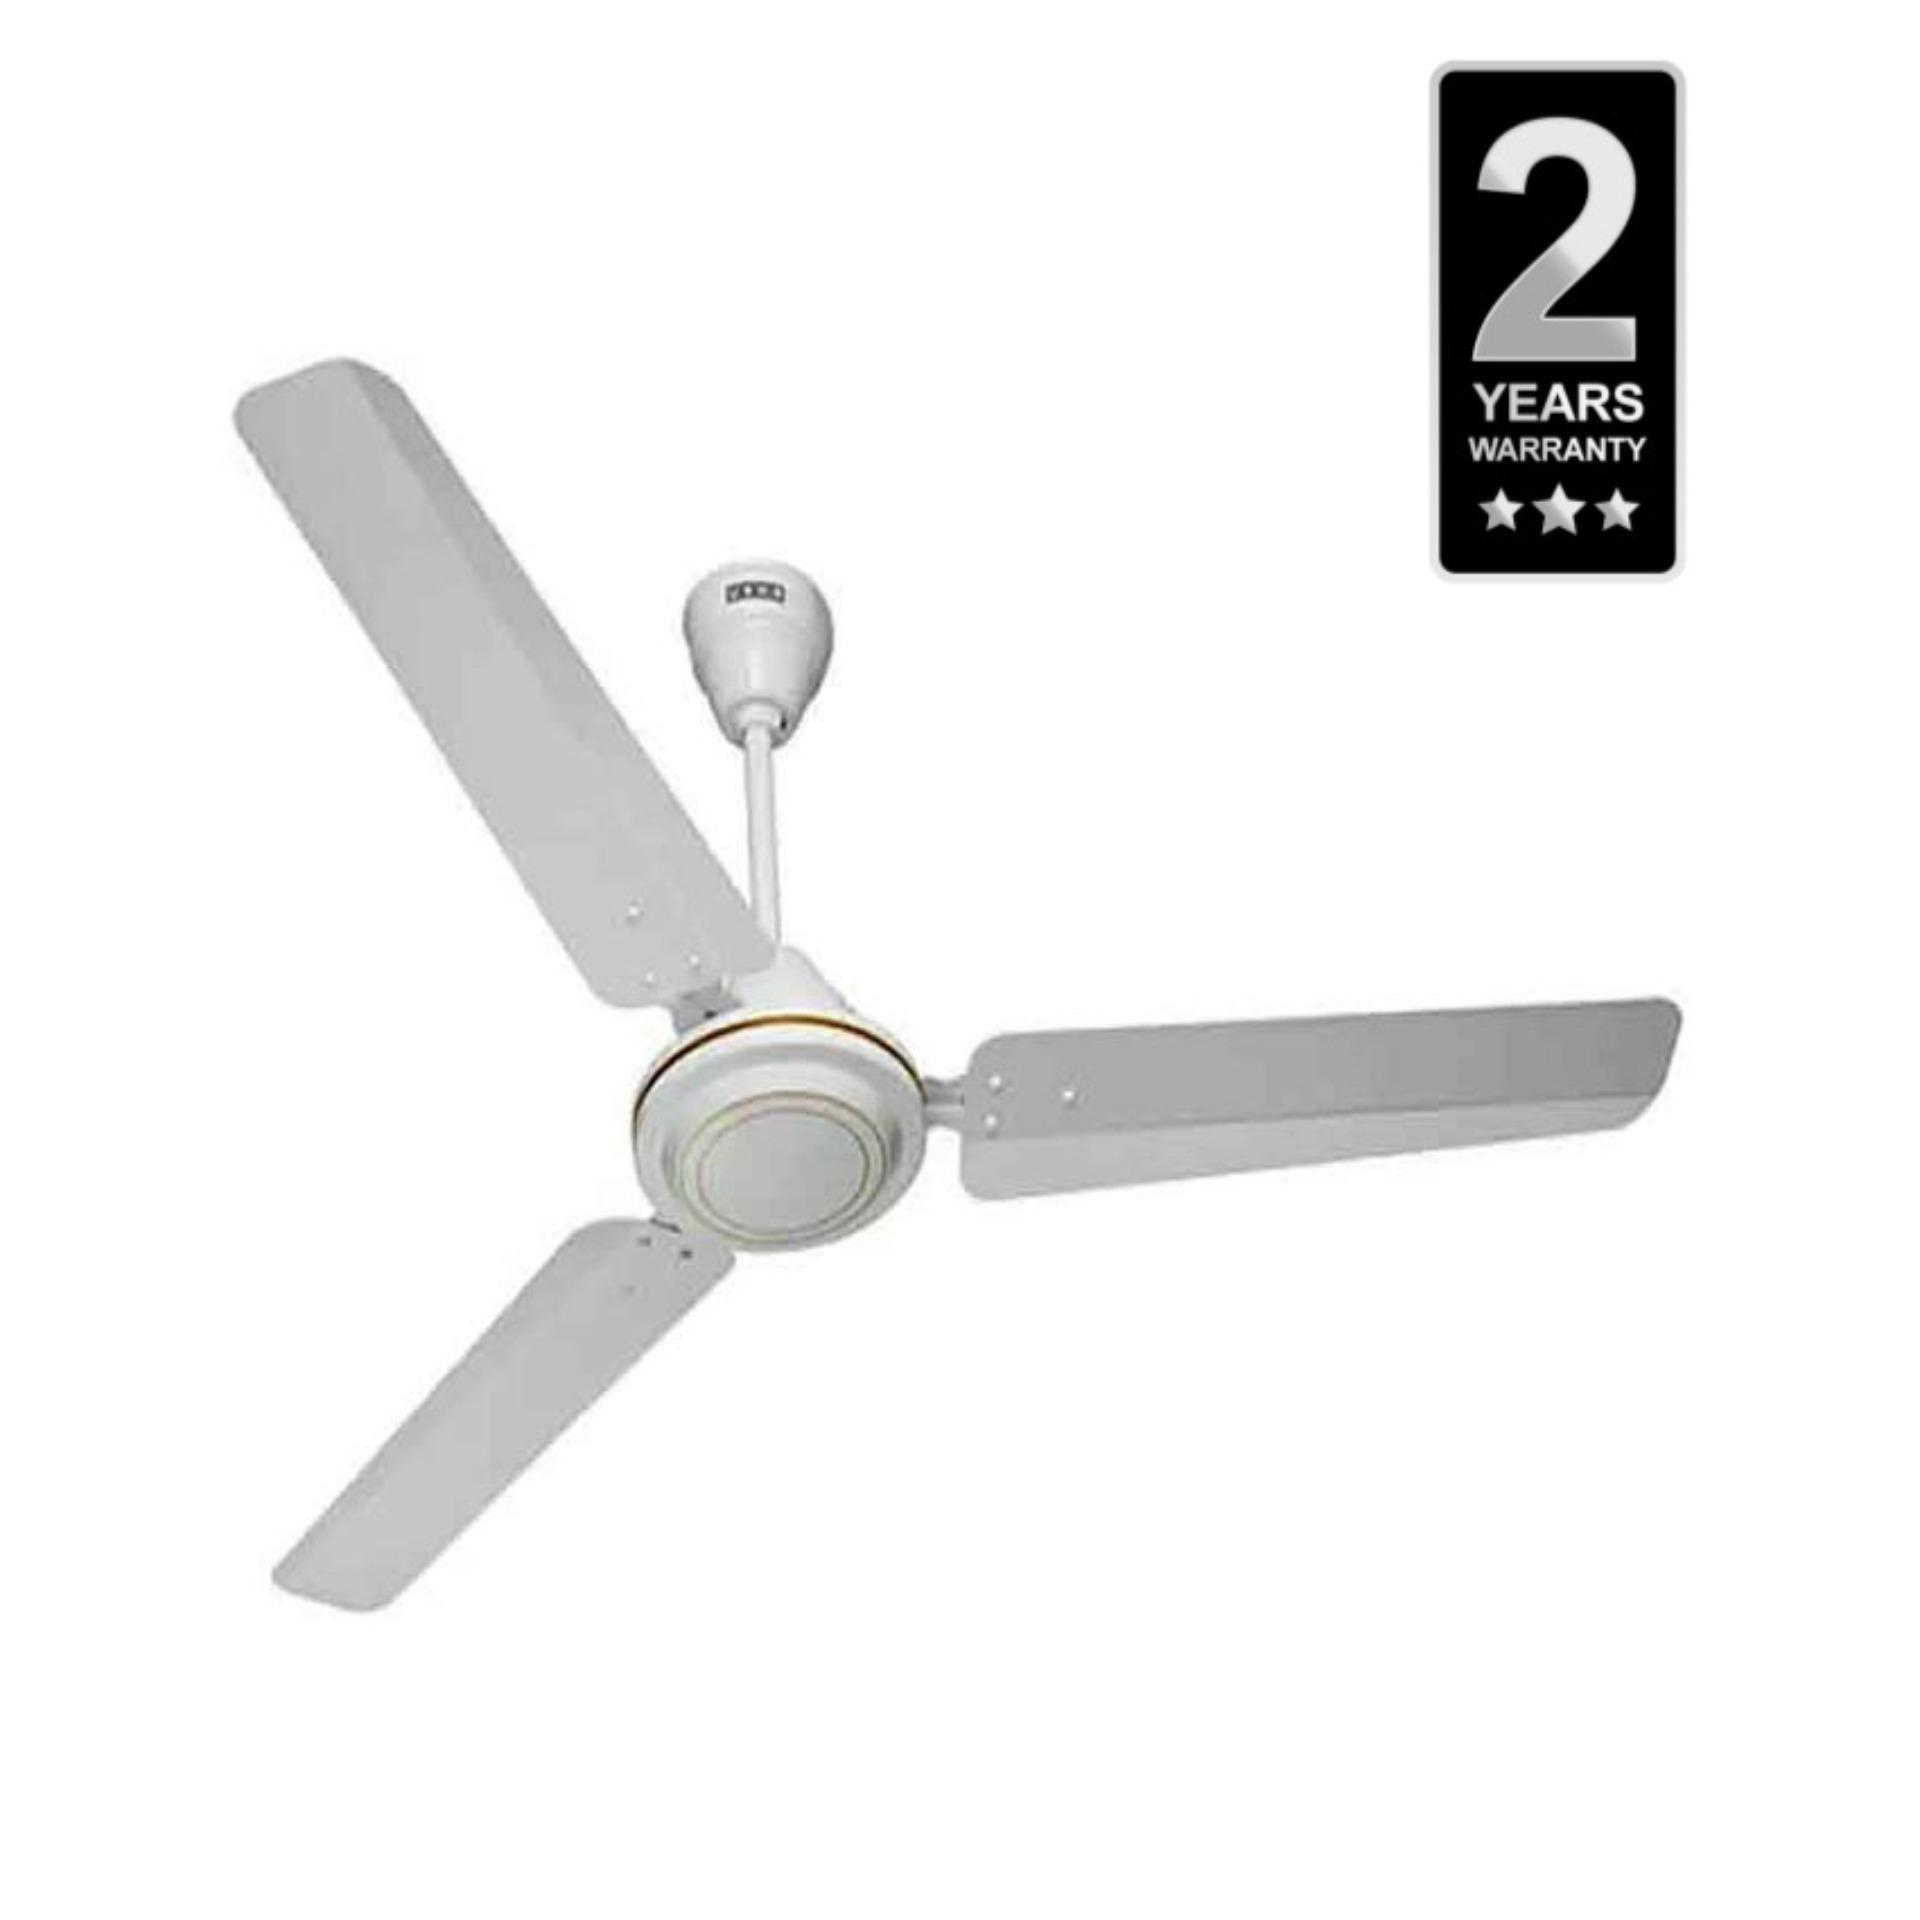 Usha Ceiling Fan 56 Rich Brown White Atom Ex 1400m Buy Sell